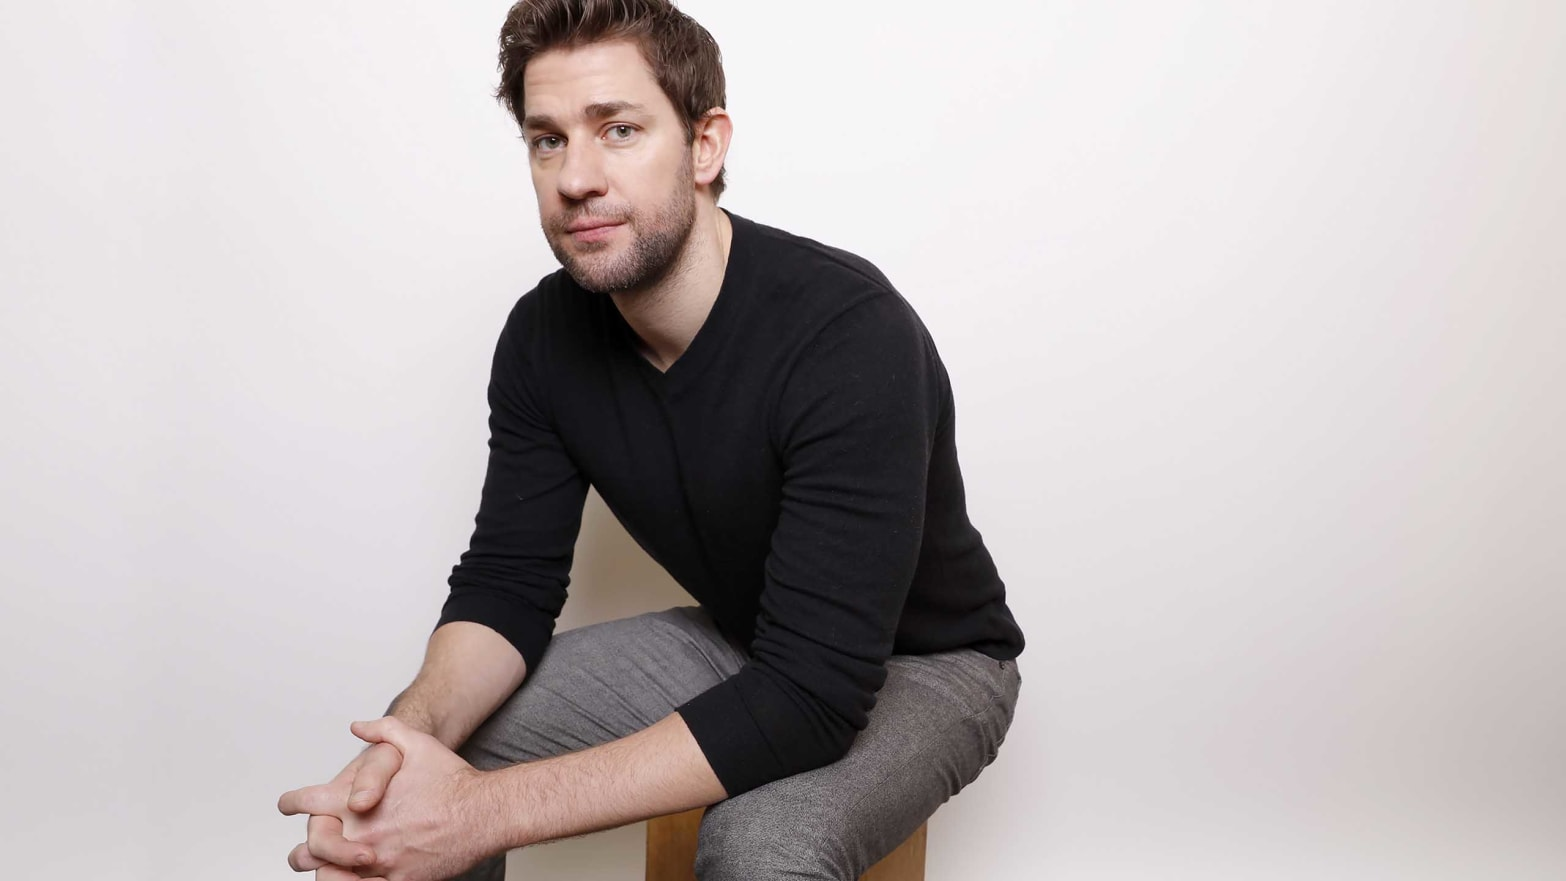 John Krasinski Lost Out on Captain America. So He Became a Great Director Instead.